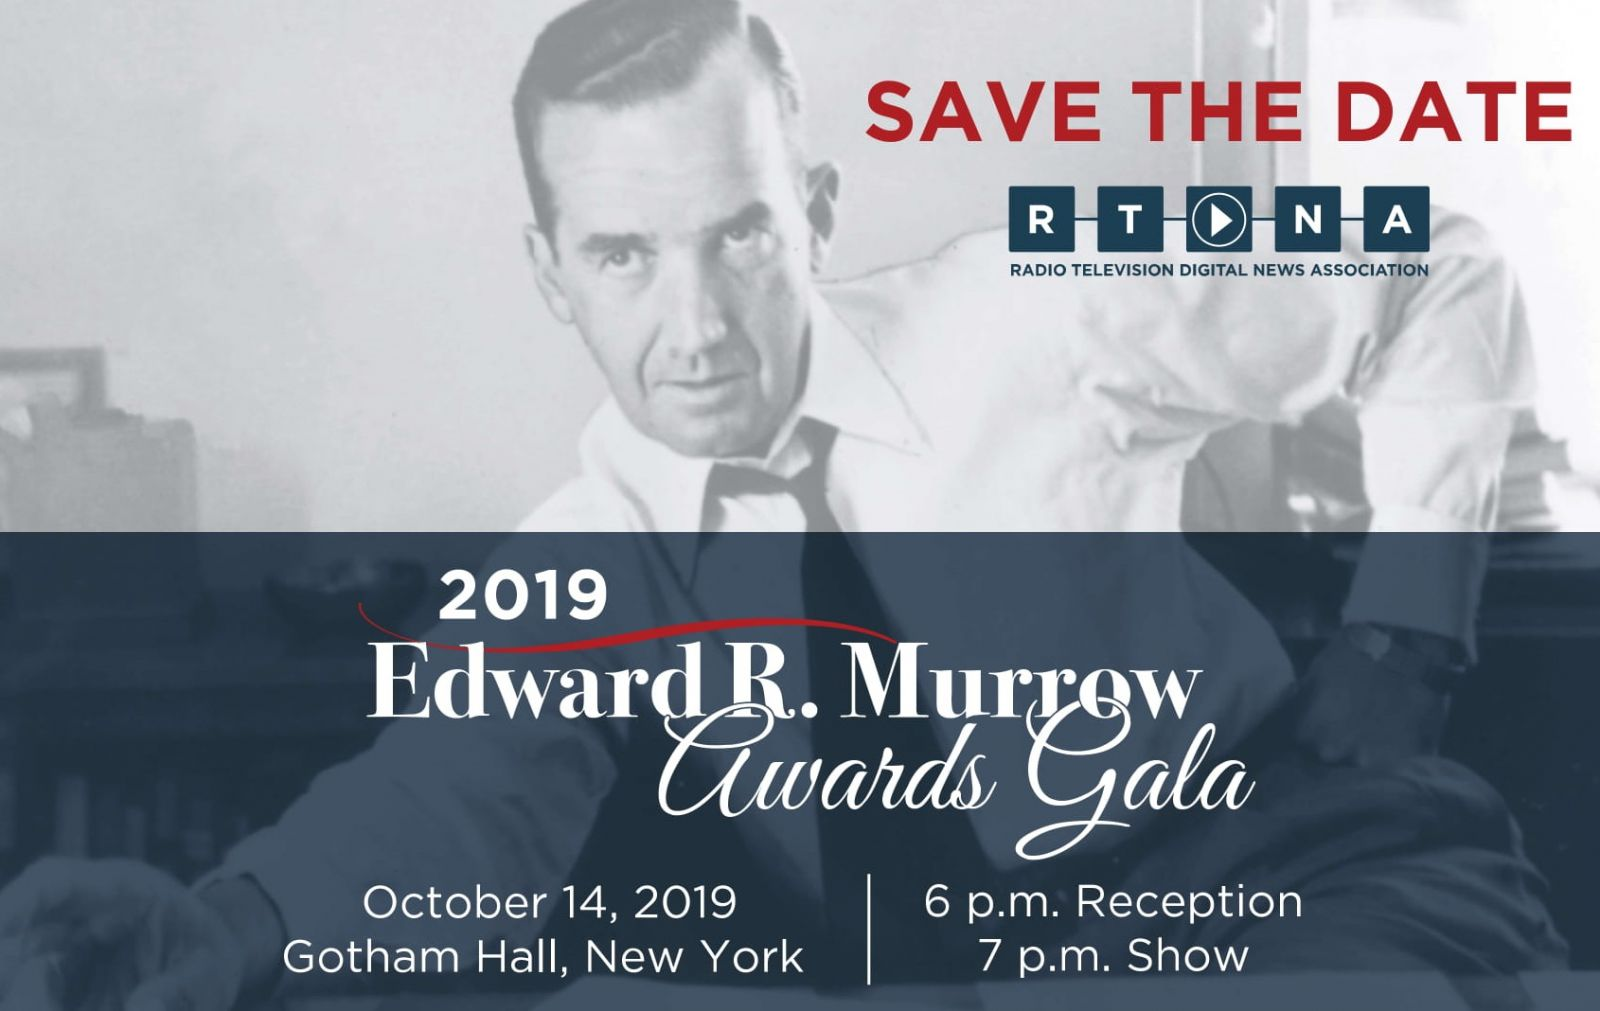 Murrows 2019 Save The Date